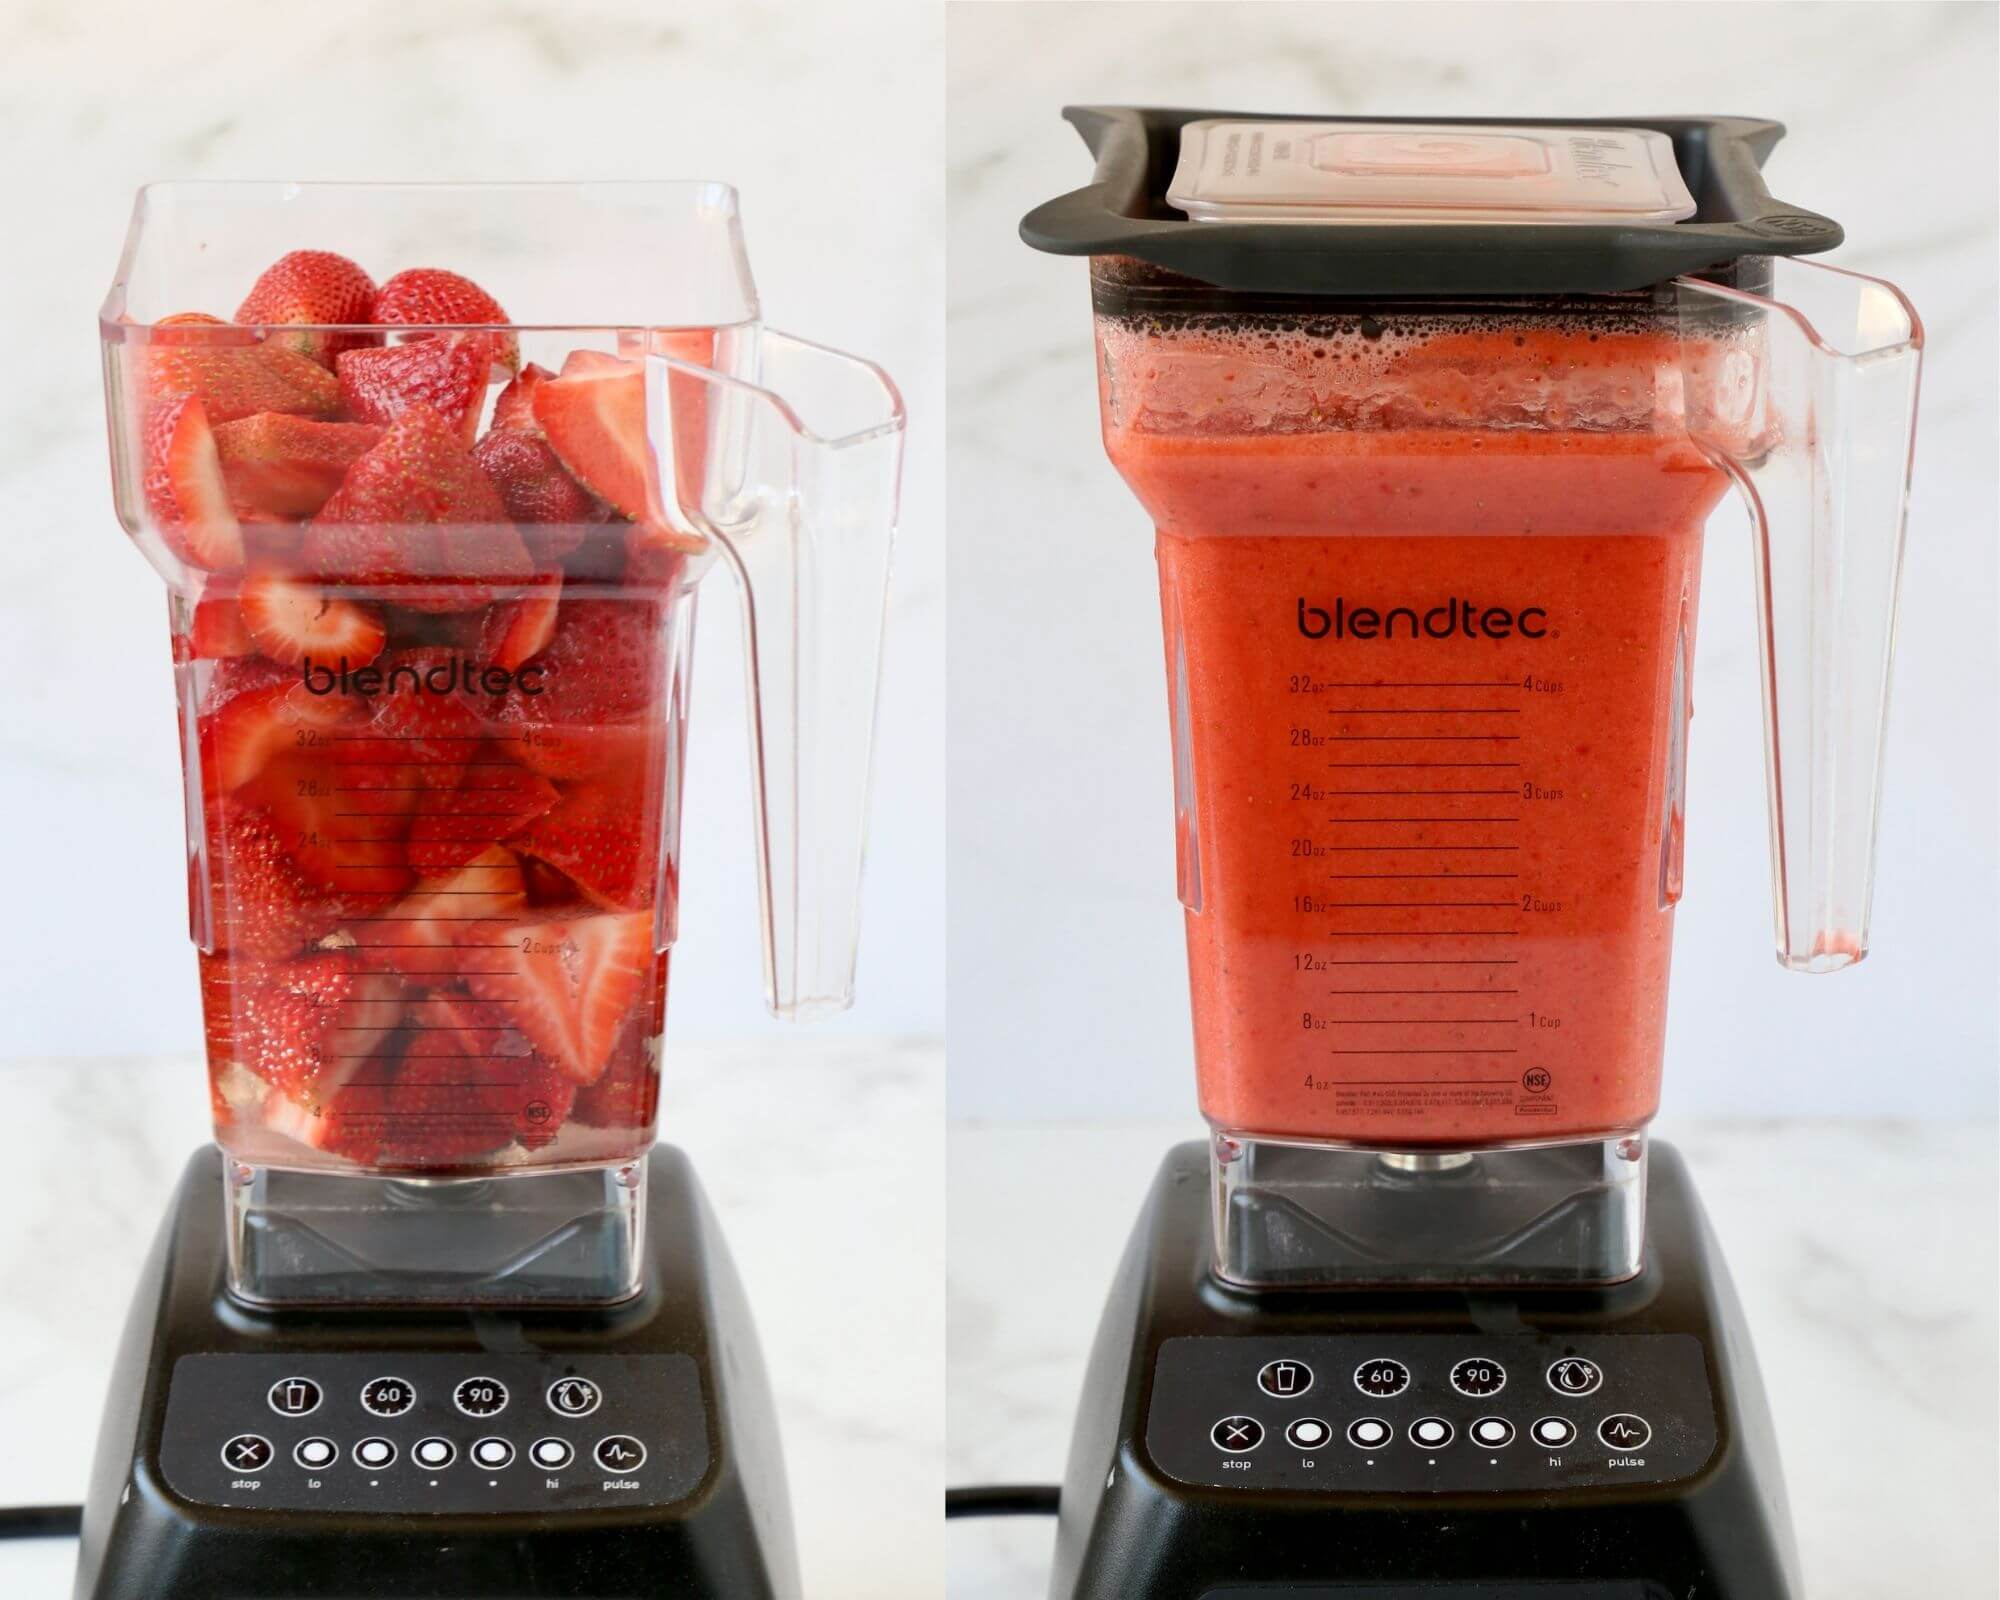 A blender filled with strawberries, next to a blender with pureed strawberries.